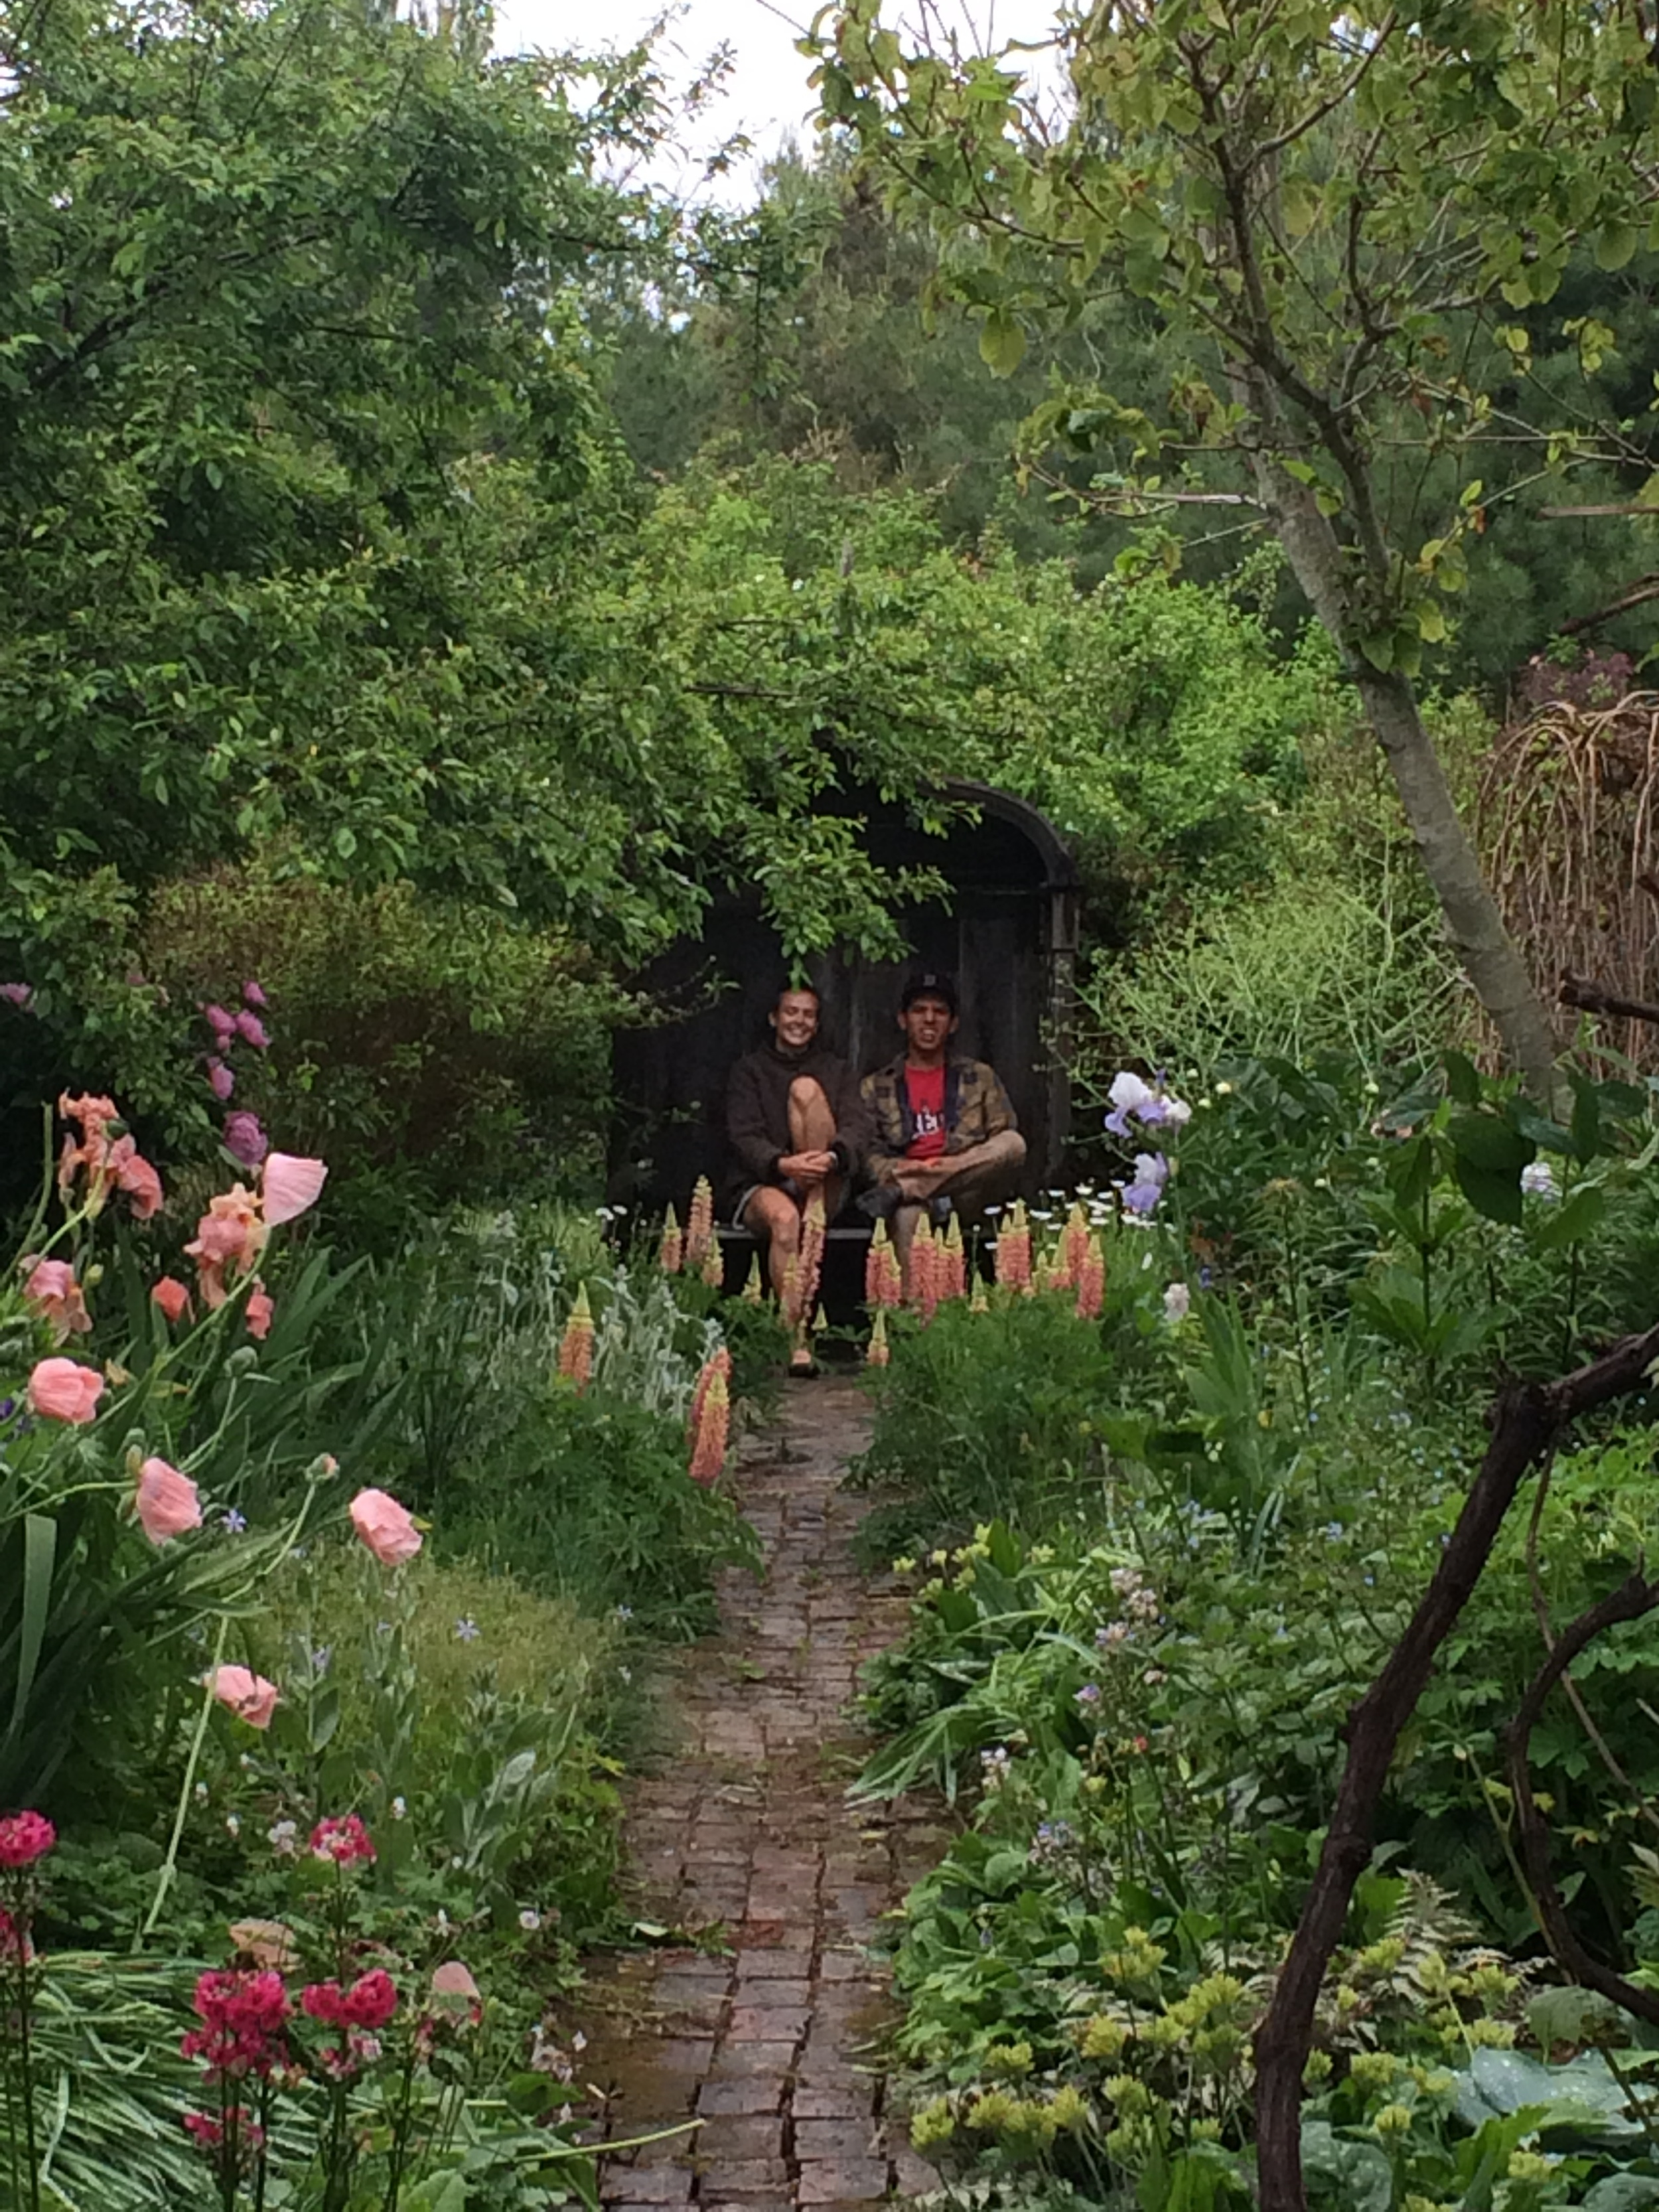 Many a visit to Gillian's magical garden!